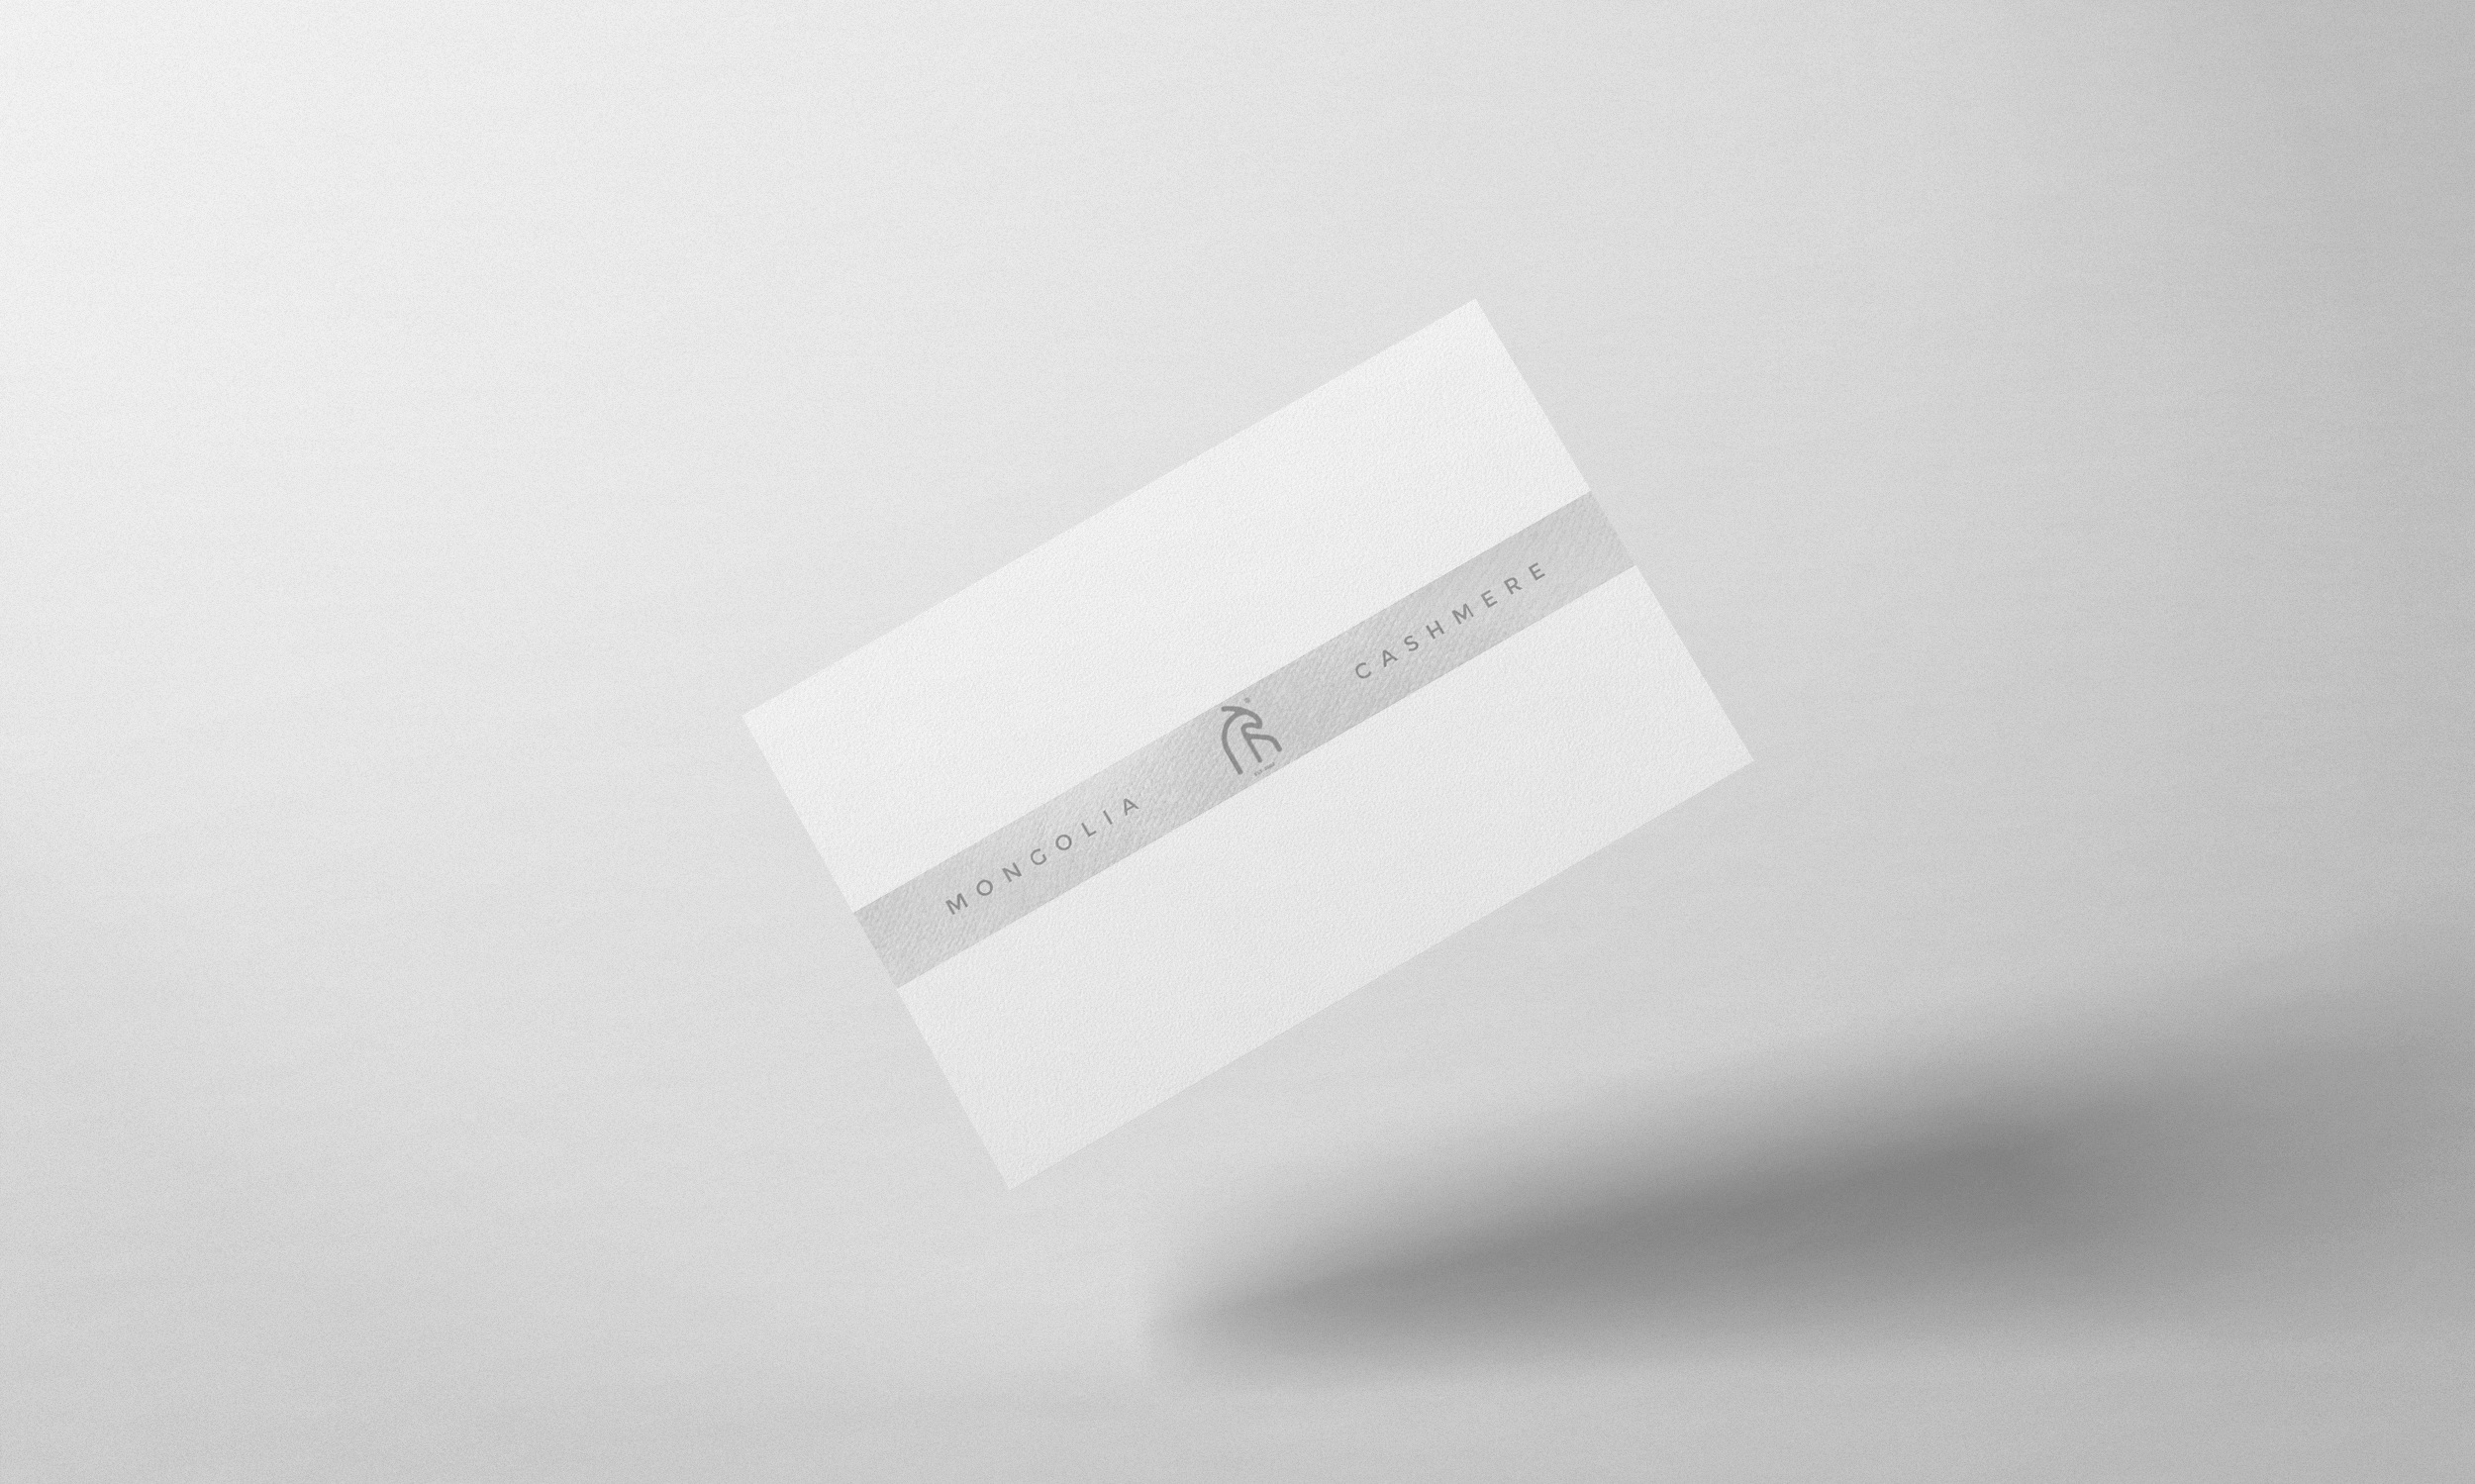 mc-introduction-business-card.jpg